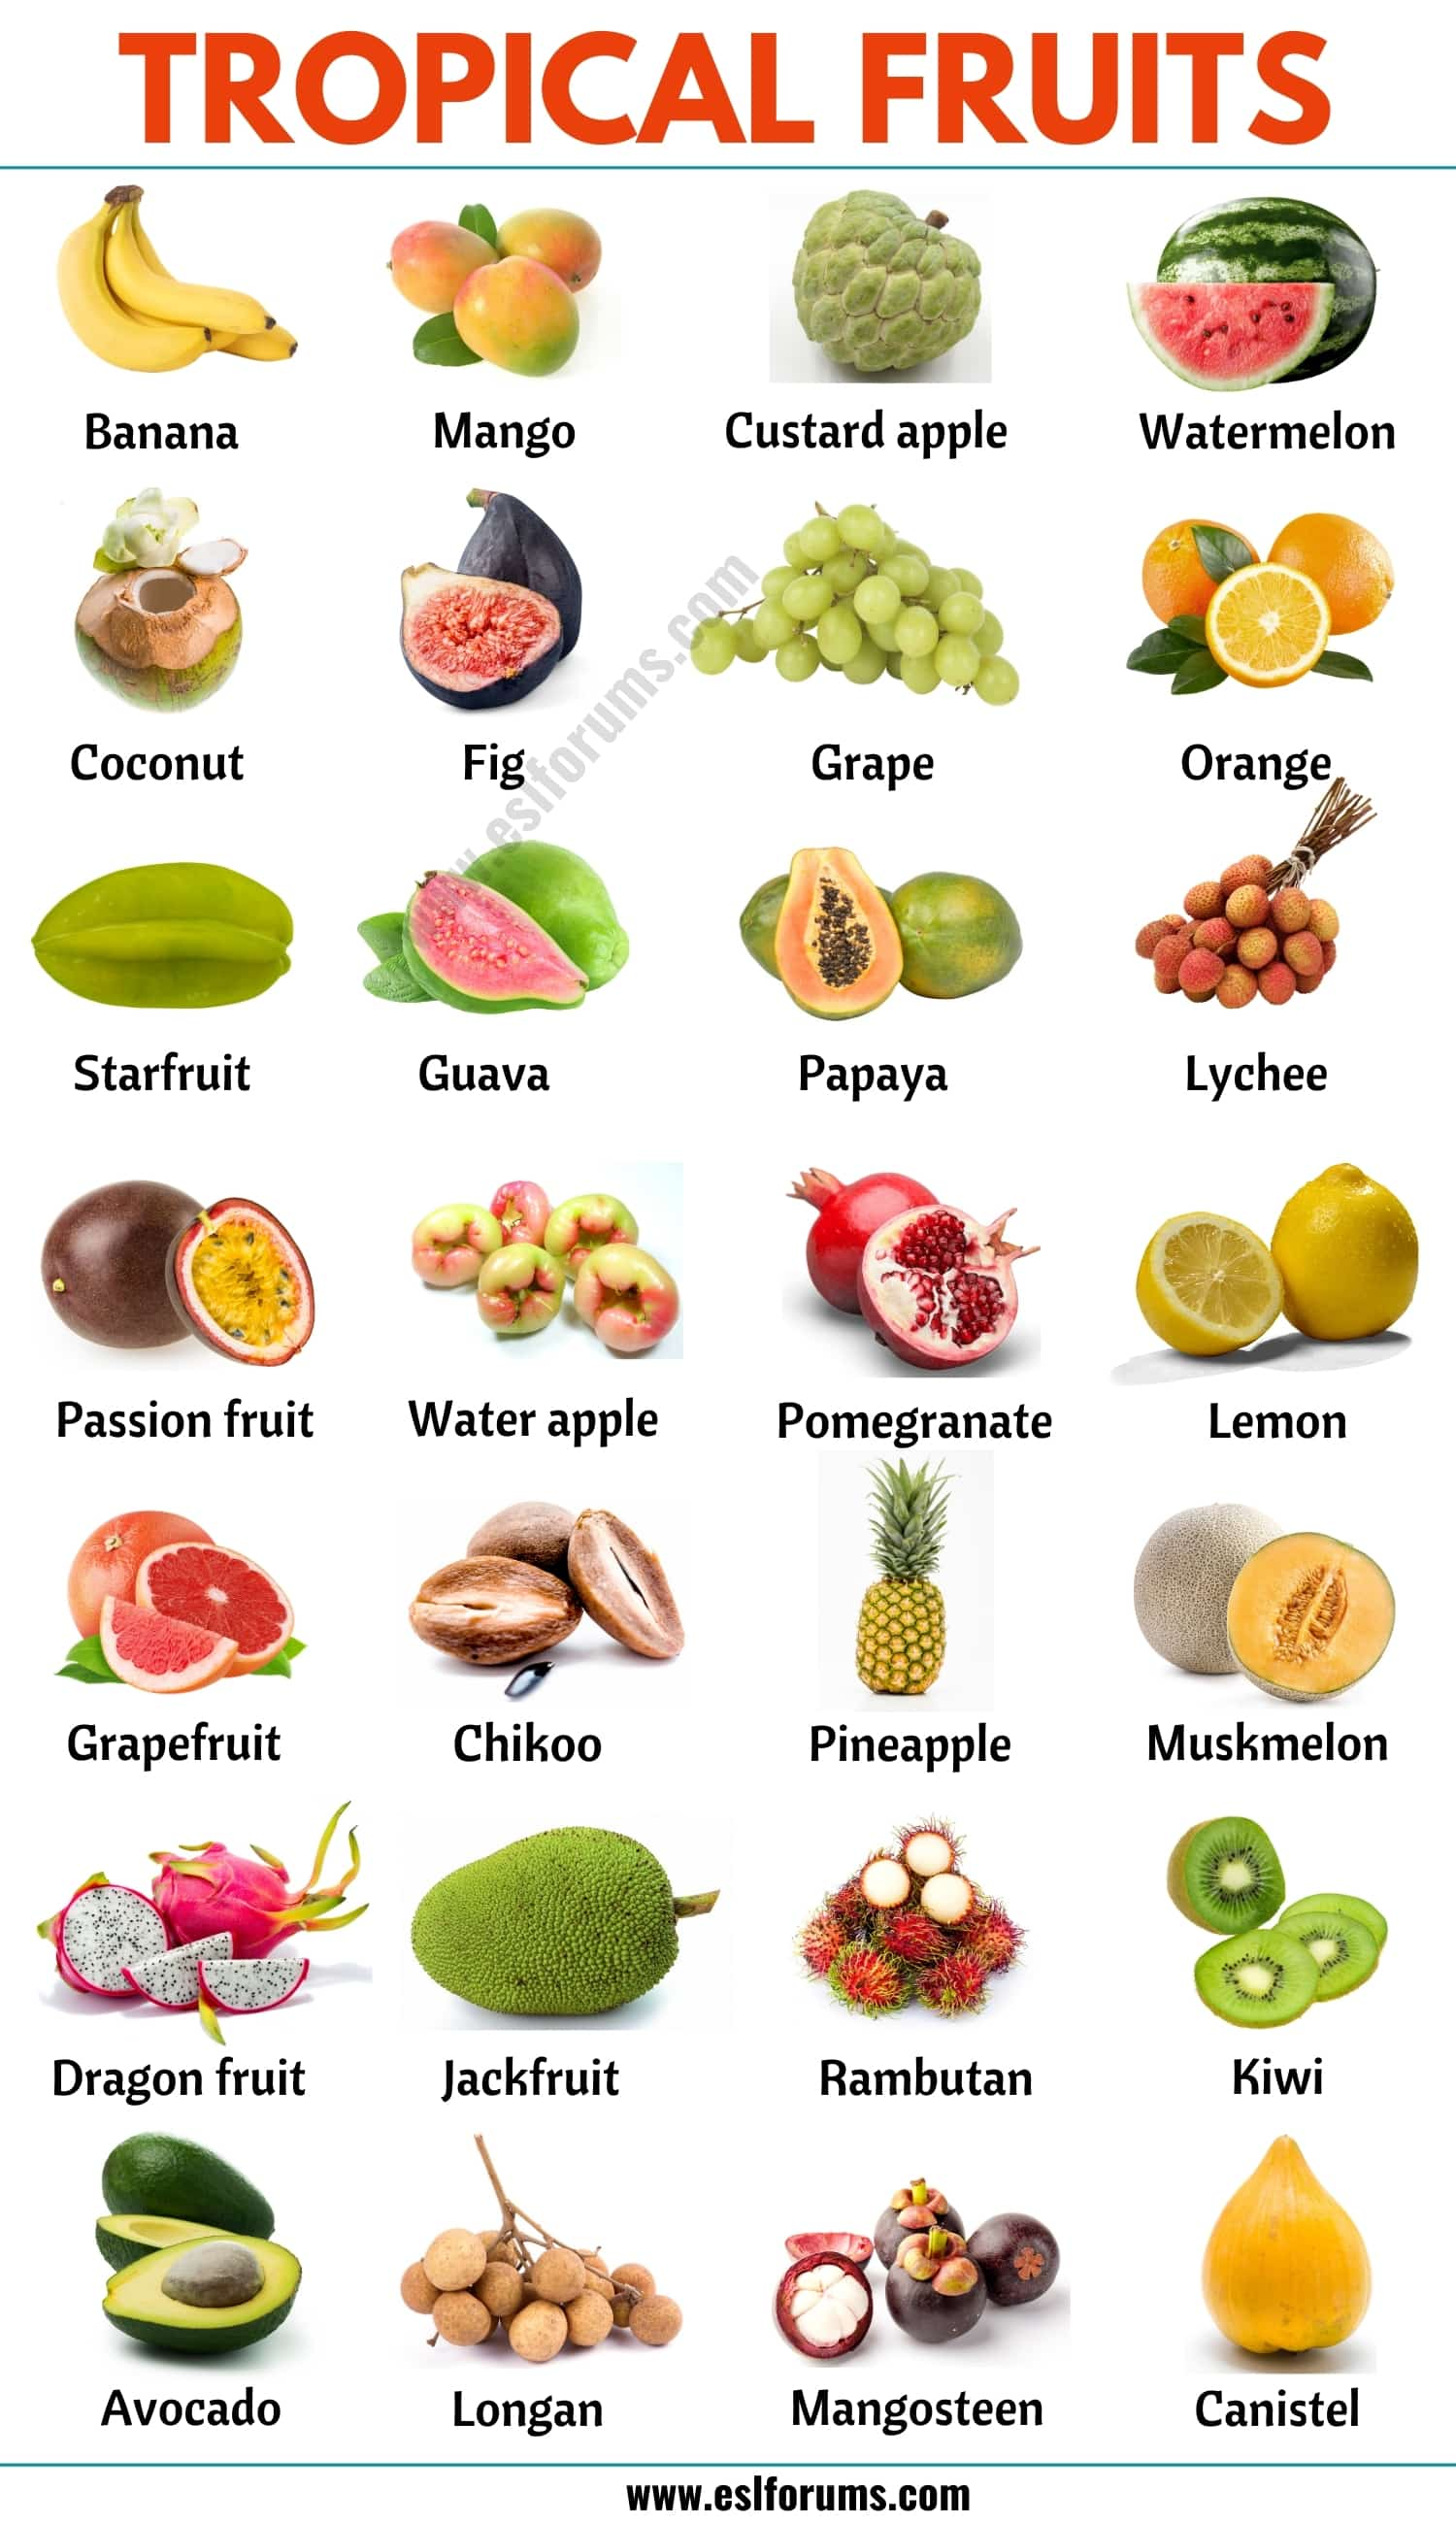 Tropical Fruits: List of 25+ Popular Tropical Fruits in English